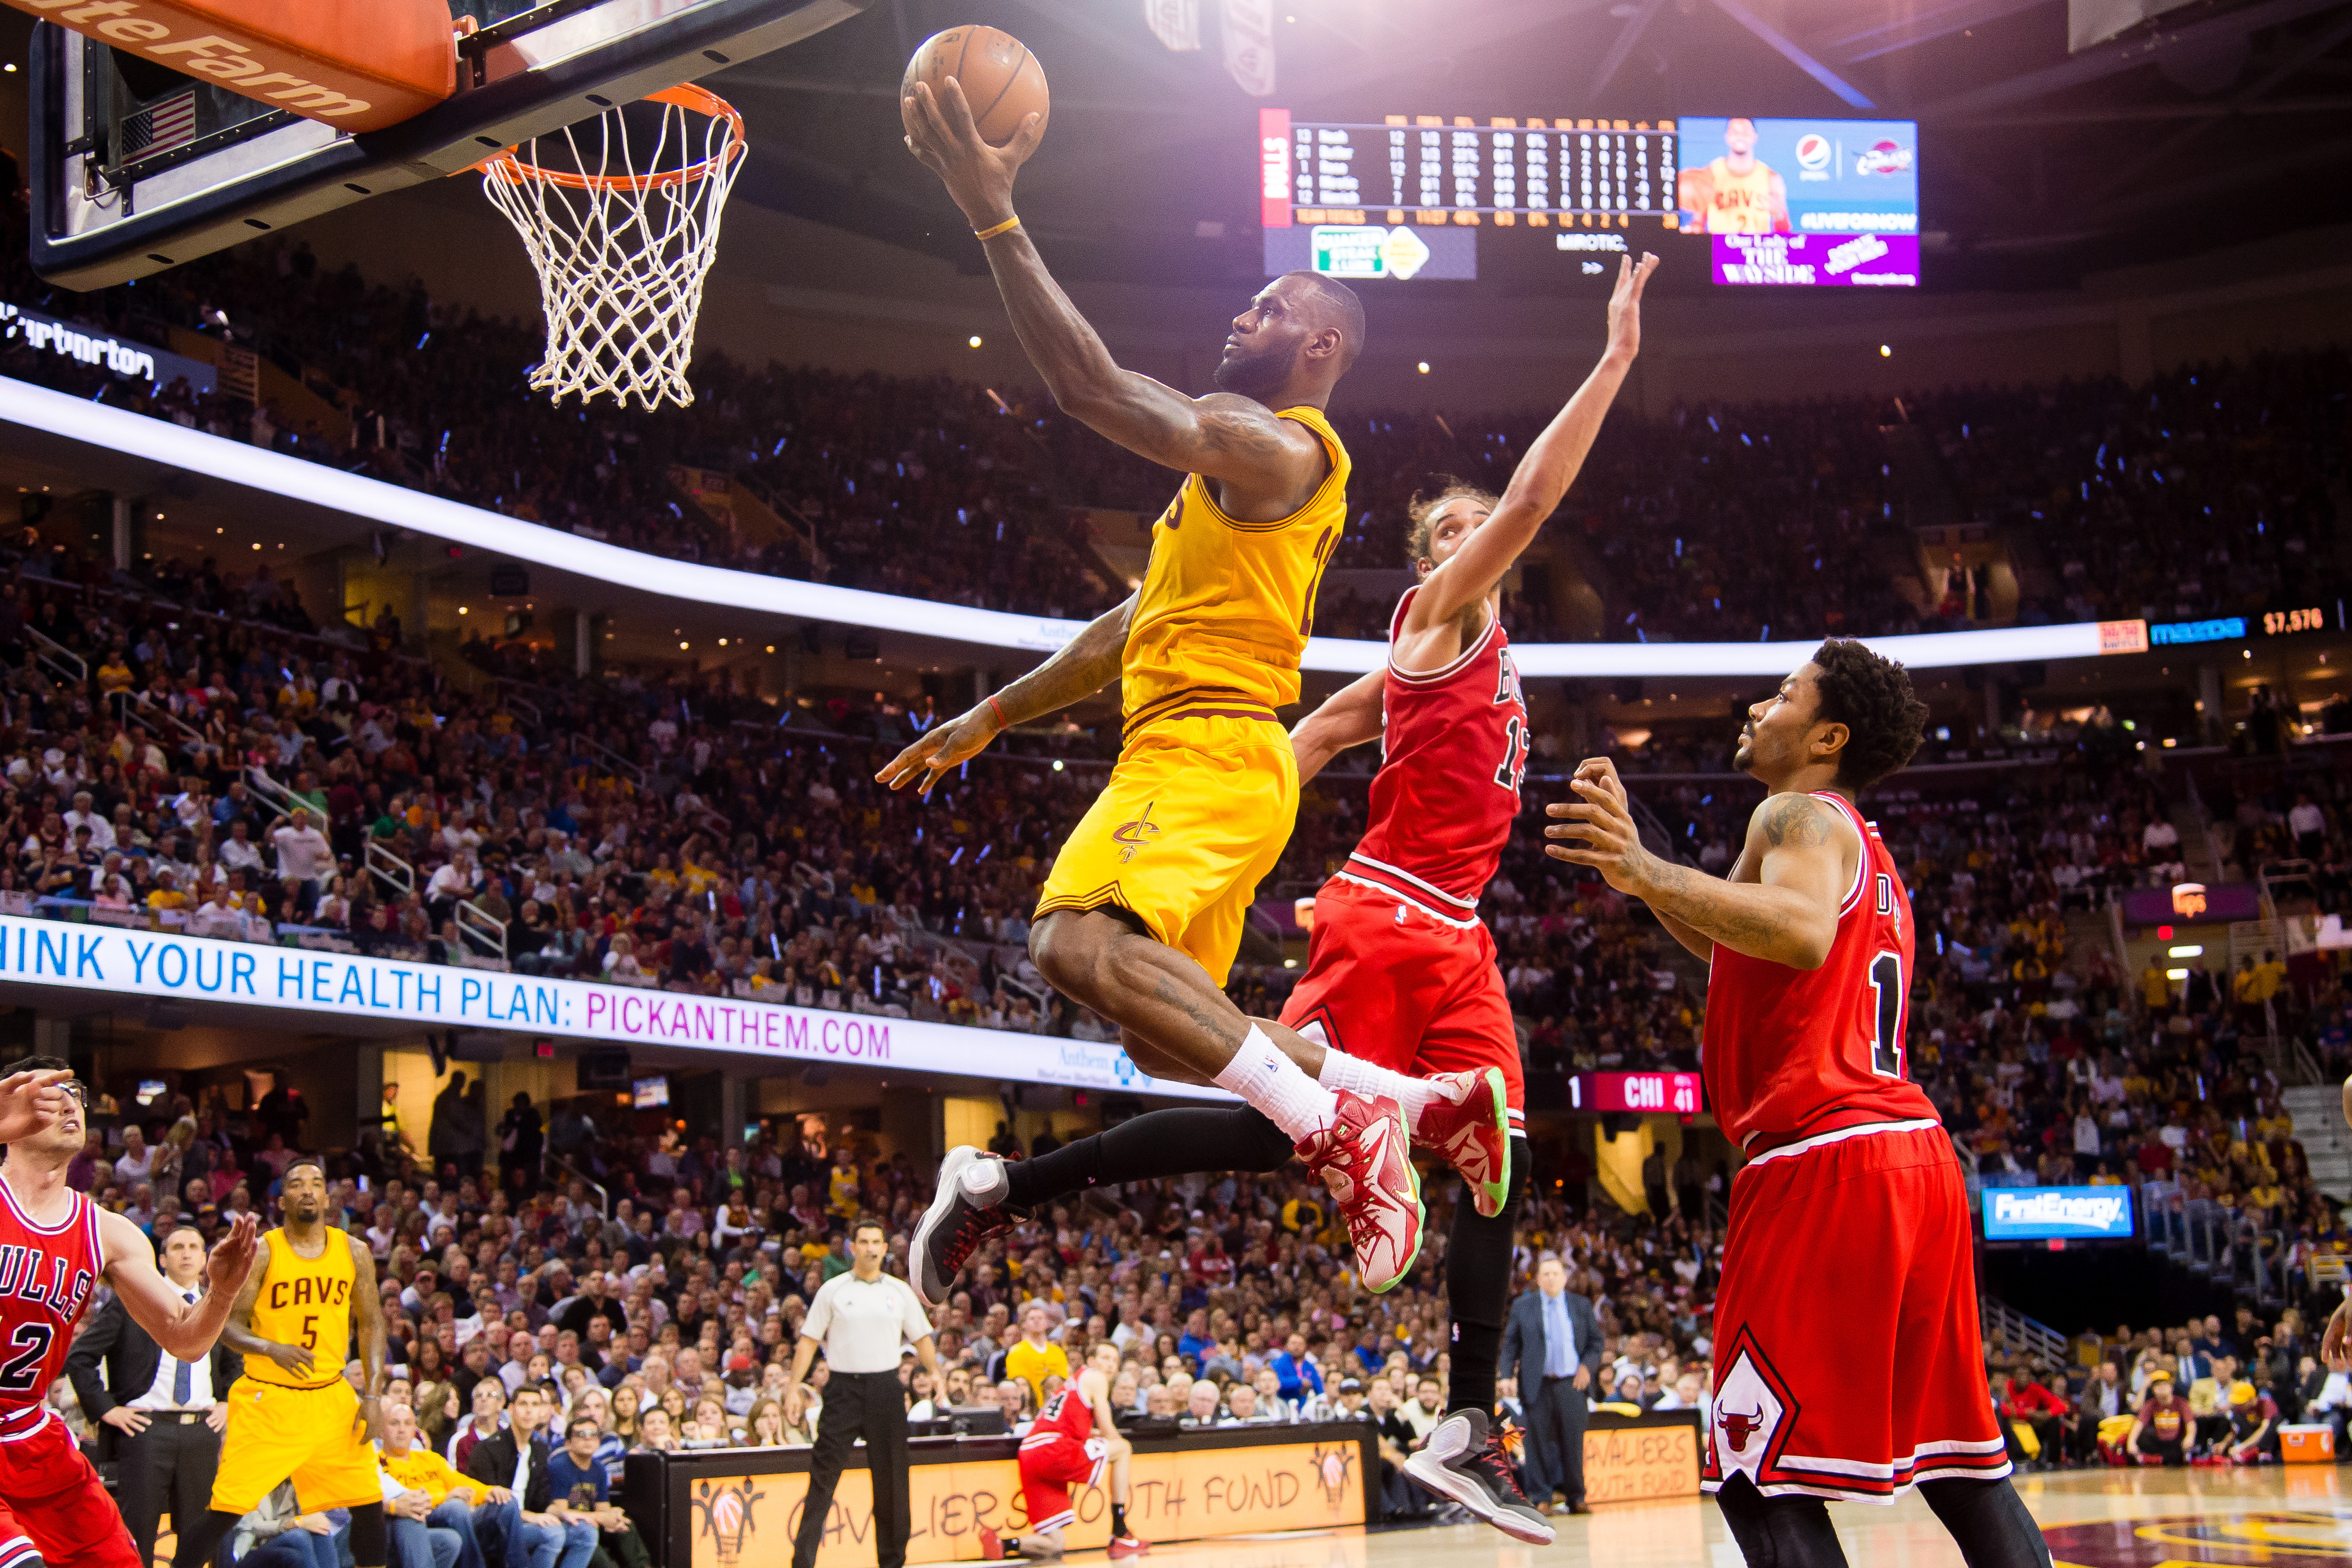 NBA playoffs scores 2015: LeBron James leads Cavaliers over Bulls in Game 5